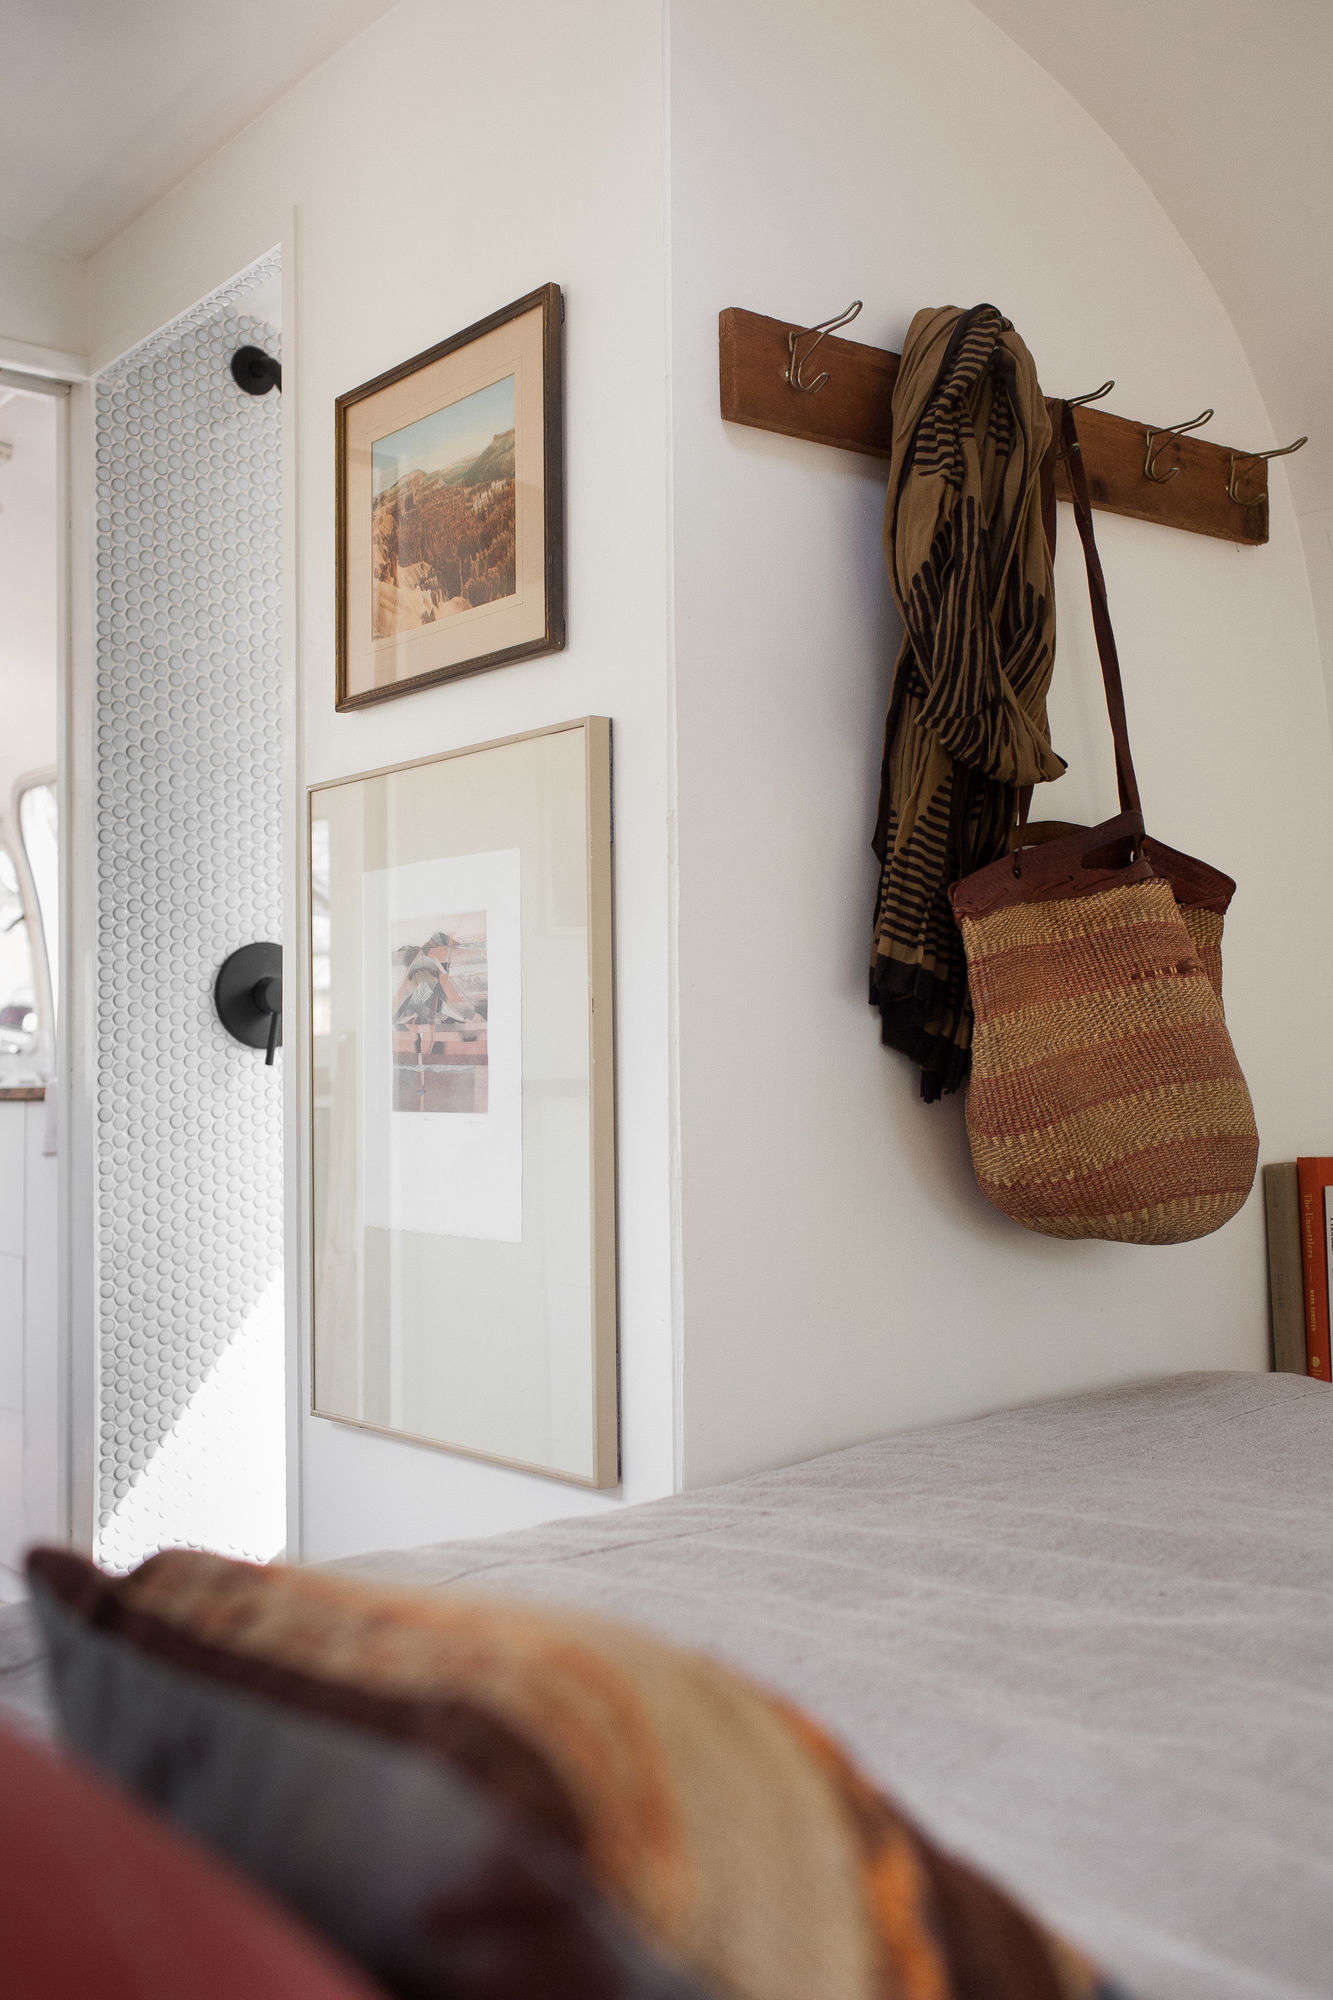 A Row Of Vintage Hooks Provides More Storage In The Bedroom.